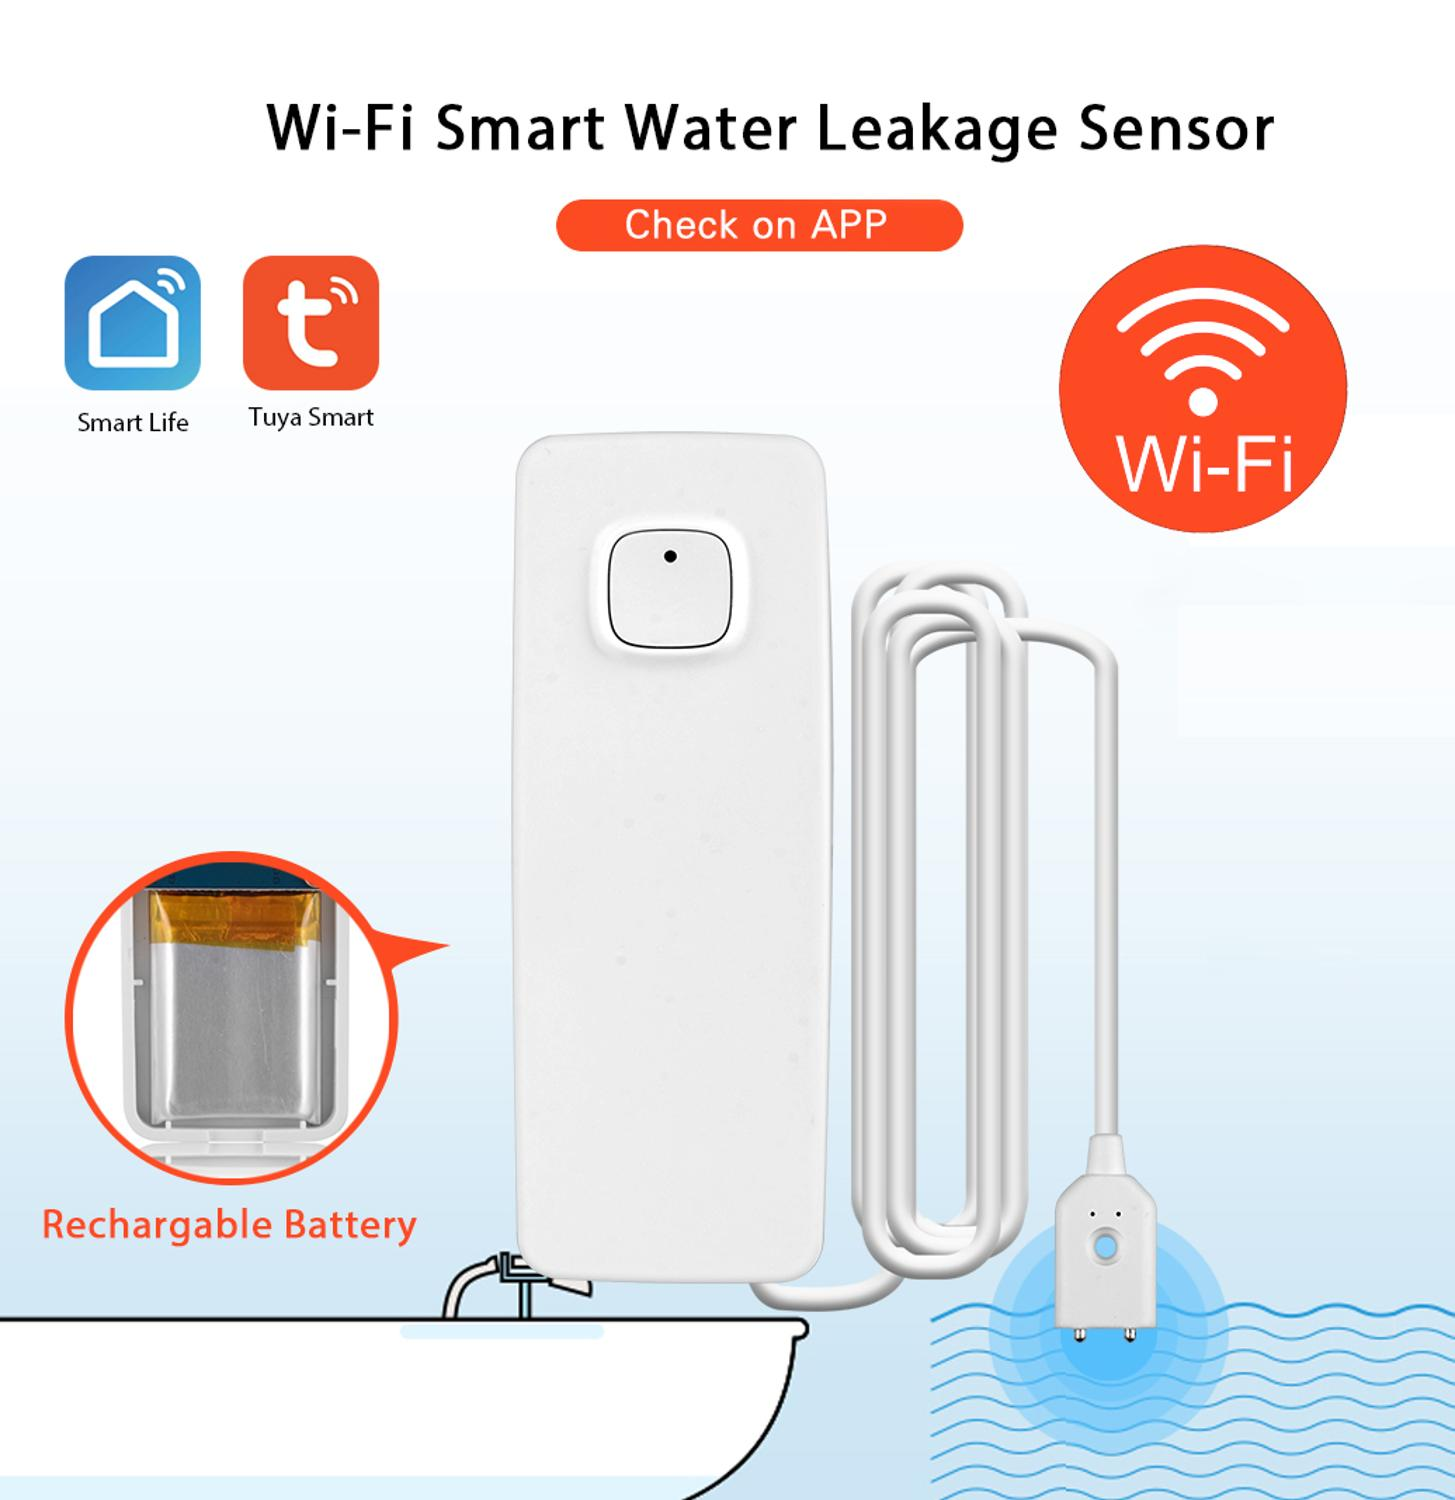 WiFi Smart Water Leakage Detector Flood Overflow Alert Security Alarm System Tuya/Smart Life App Remote Real Time Feedback